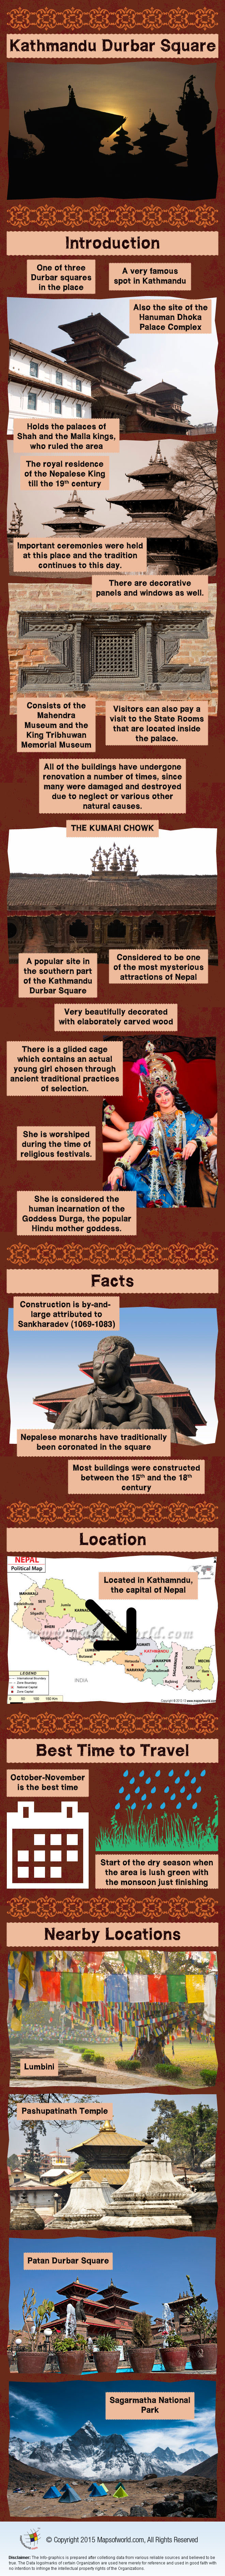 Kathmandu Durbar Square - Facts & Infographic